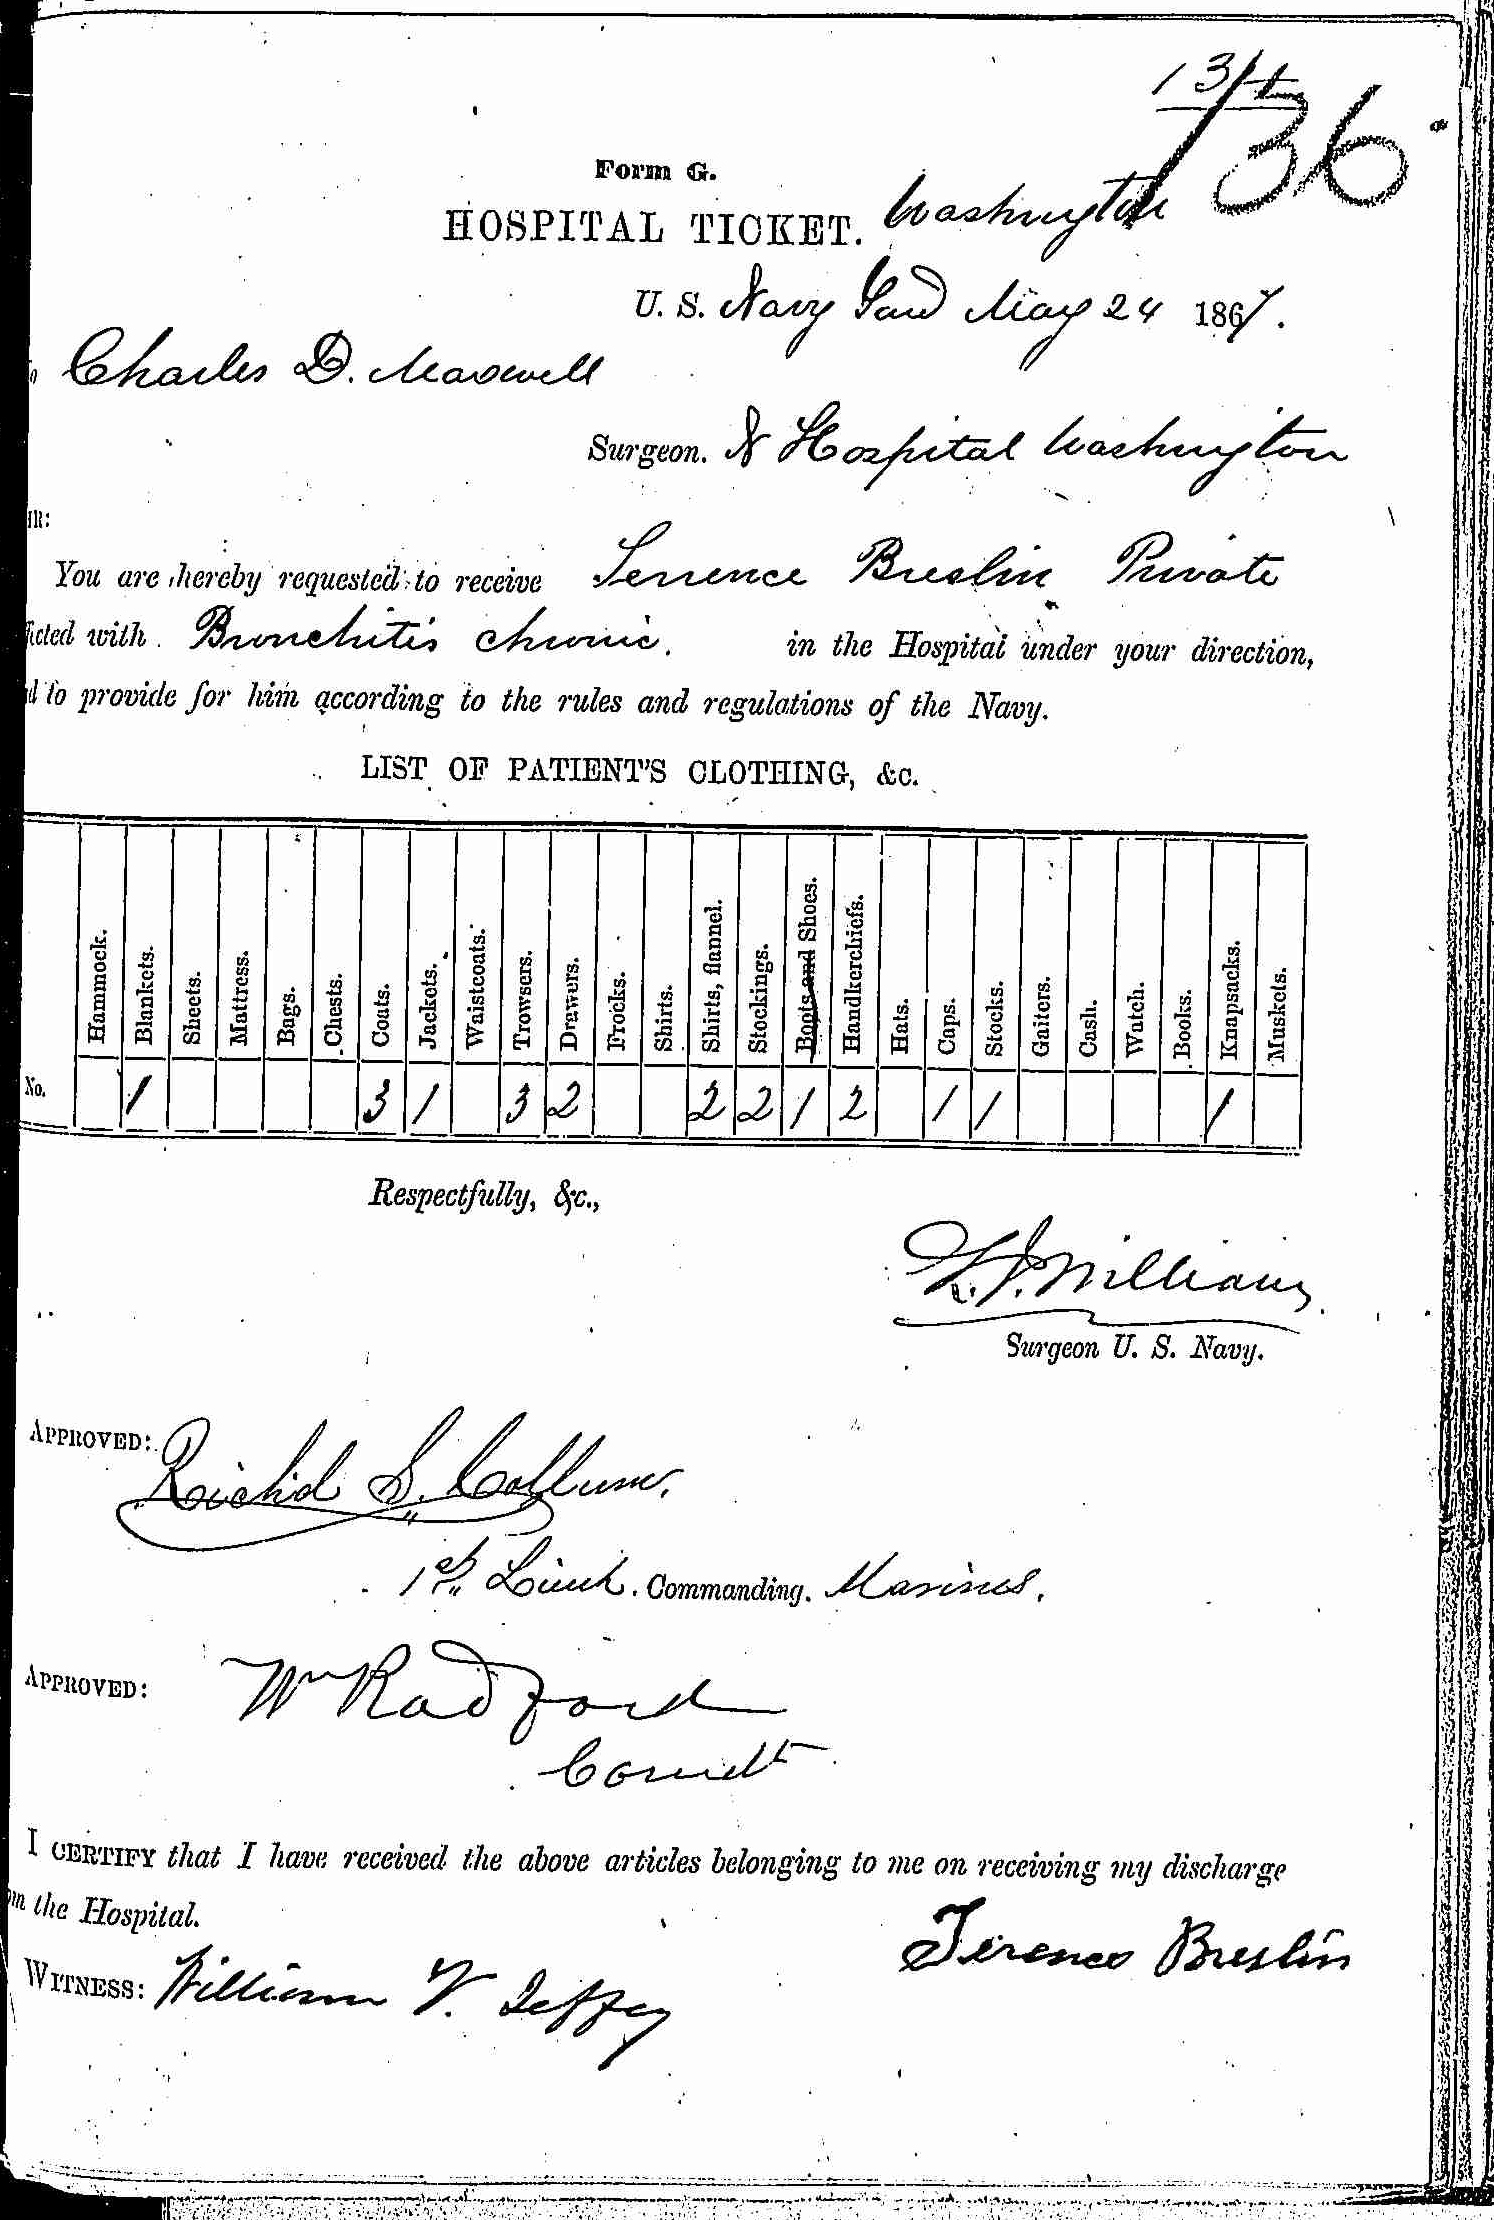 Entry for Terrence Breslin (first admission page 1 of 2) in the log Hospital Tickets and Case Papers - Naval Hospital - Washington, D.C. - 1866-68